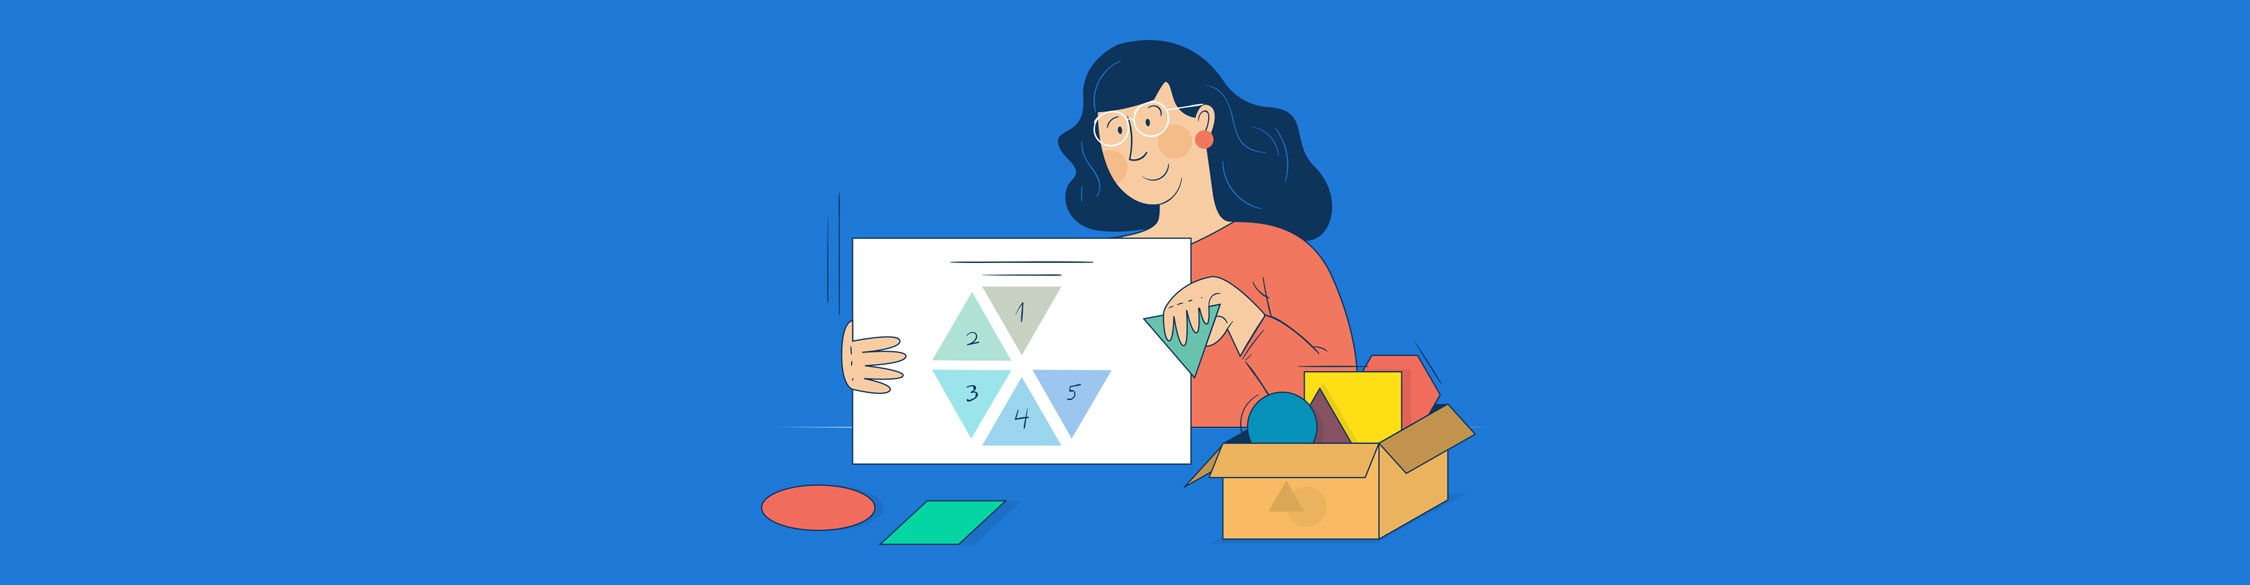 The Meaning of Shapes and How to Use Them Creatively in Your Designs